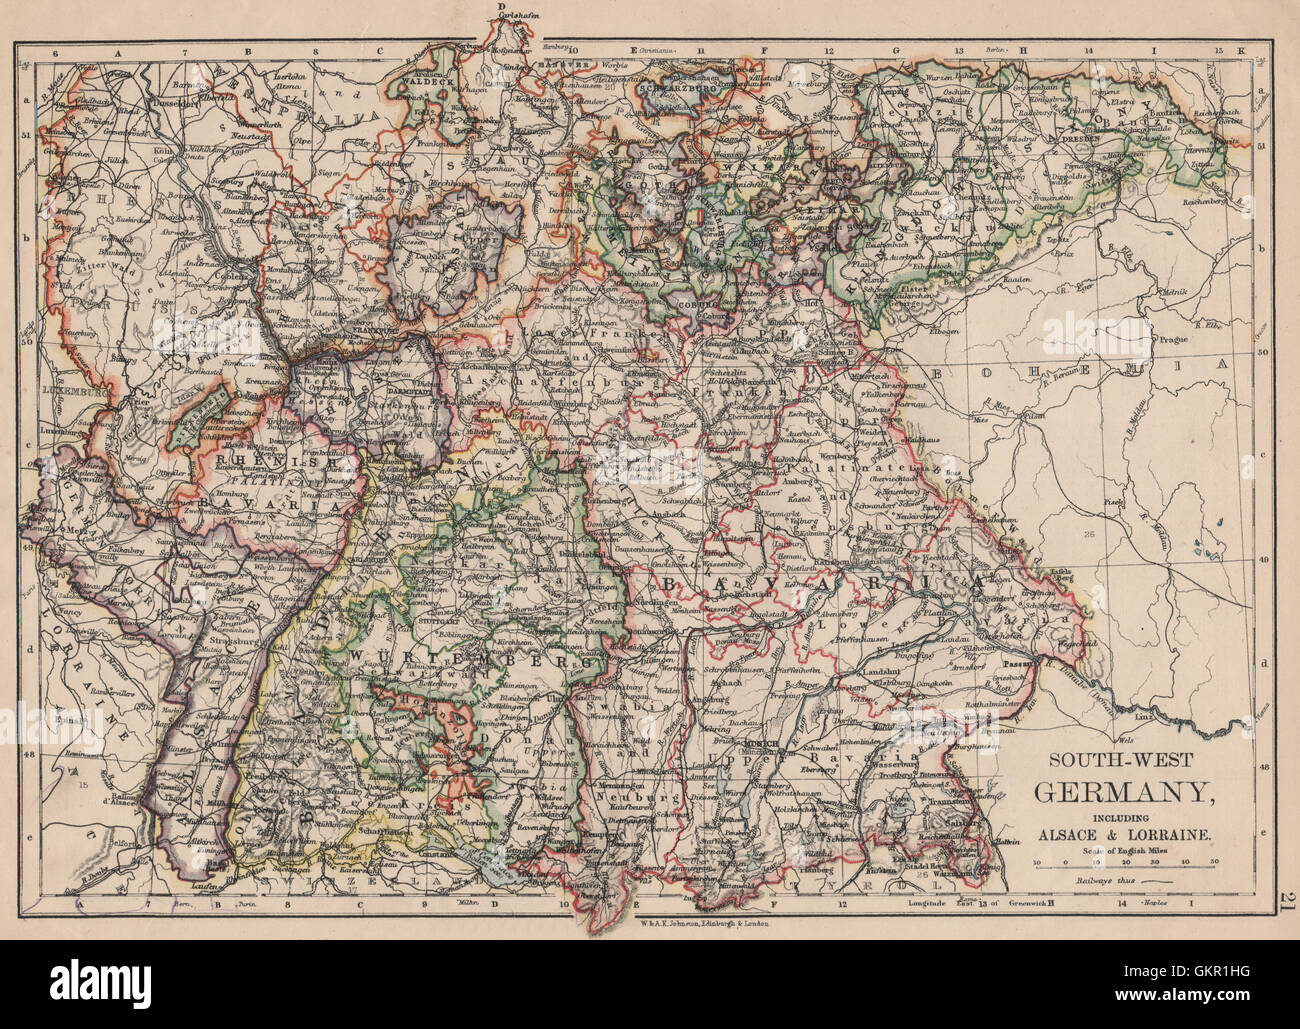 Southern Germany Bavaria Wurtemberg Saxony Alsace German Lorraine – Map Southern Germany